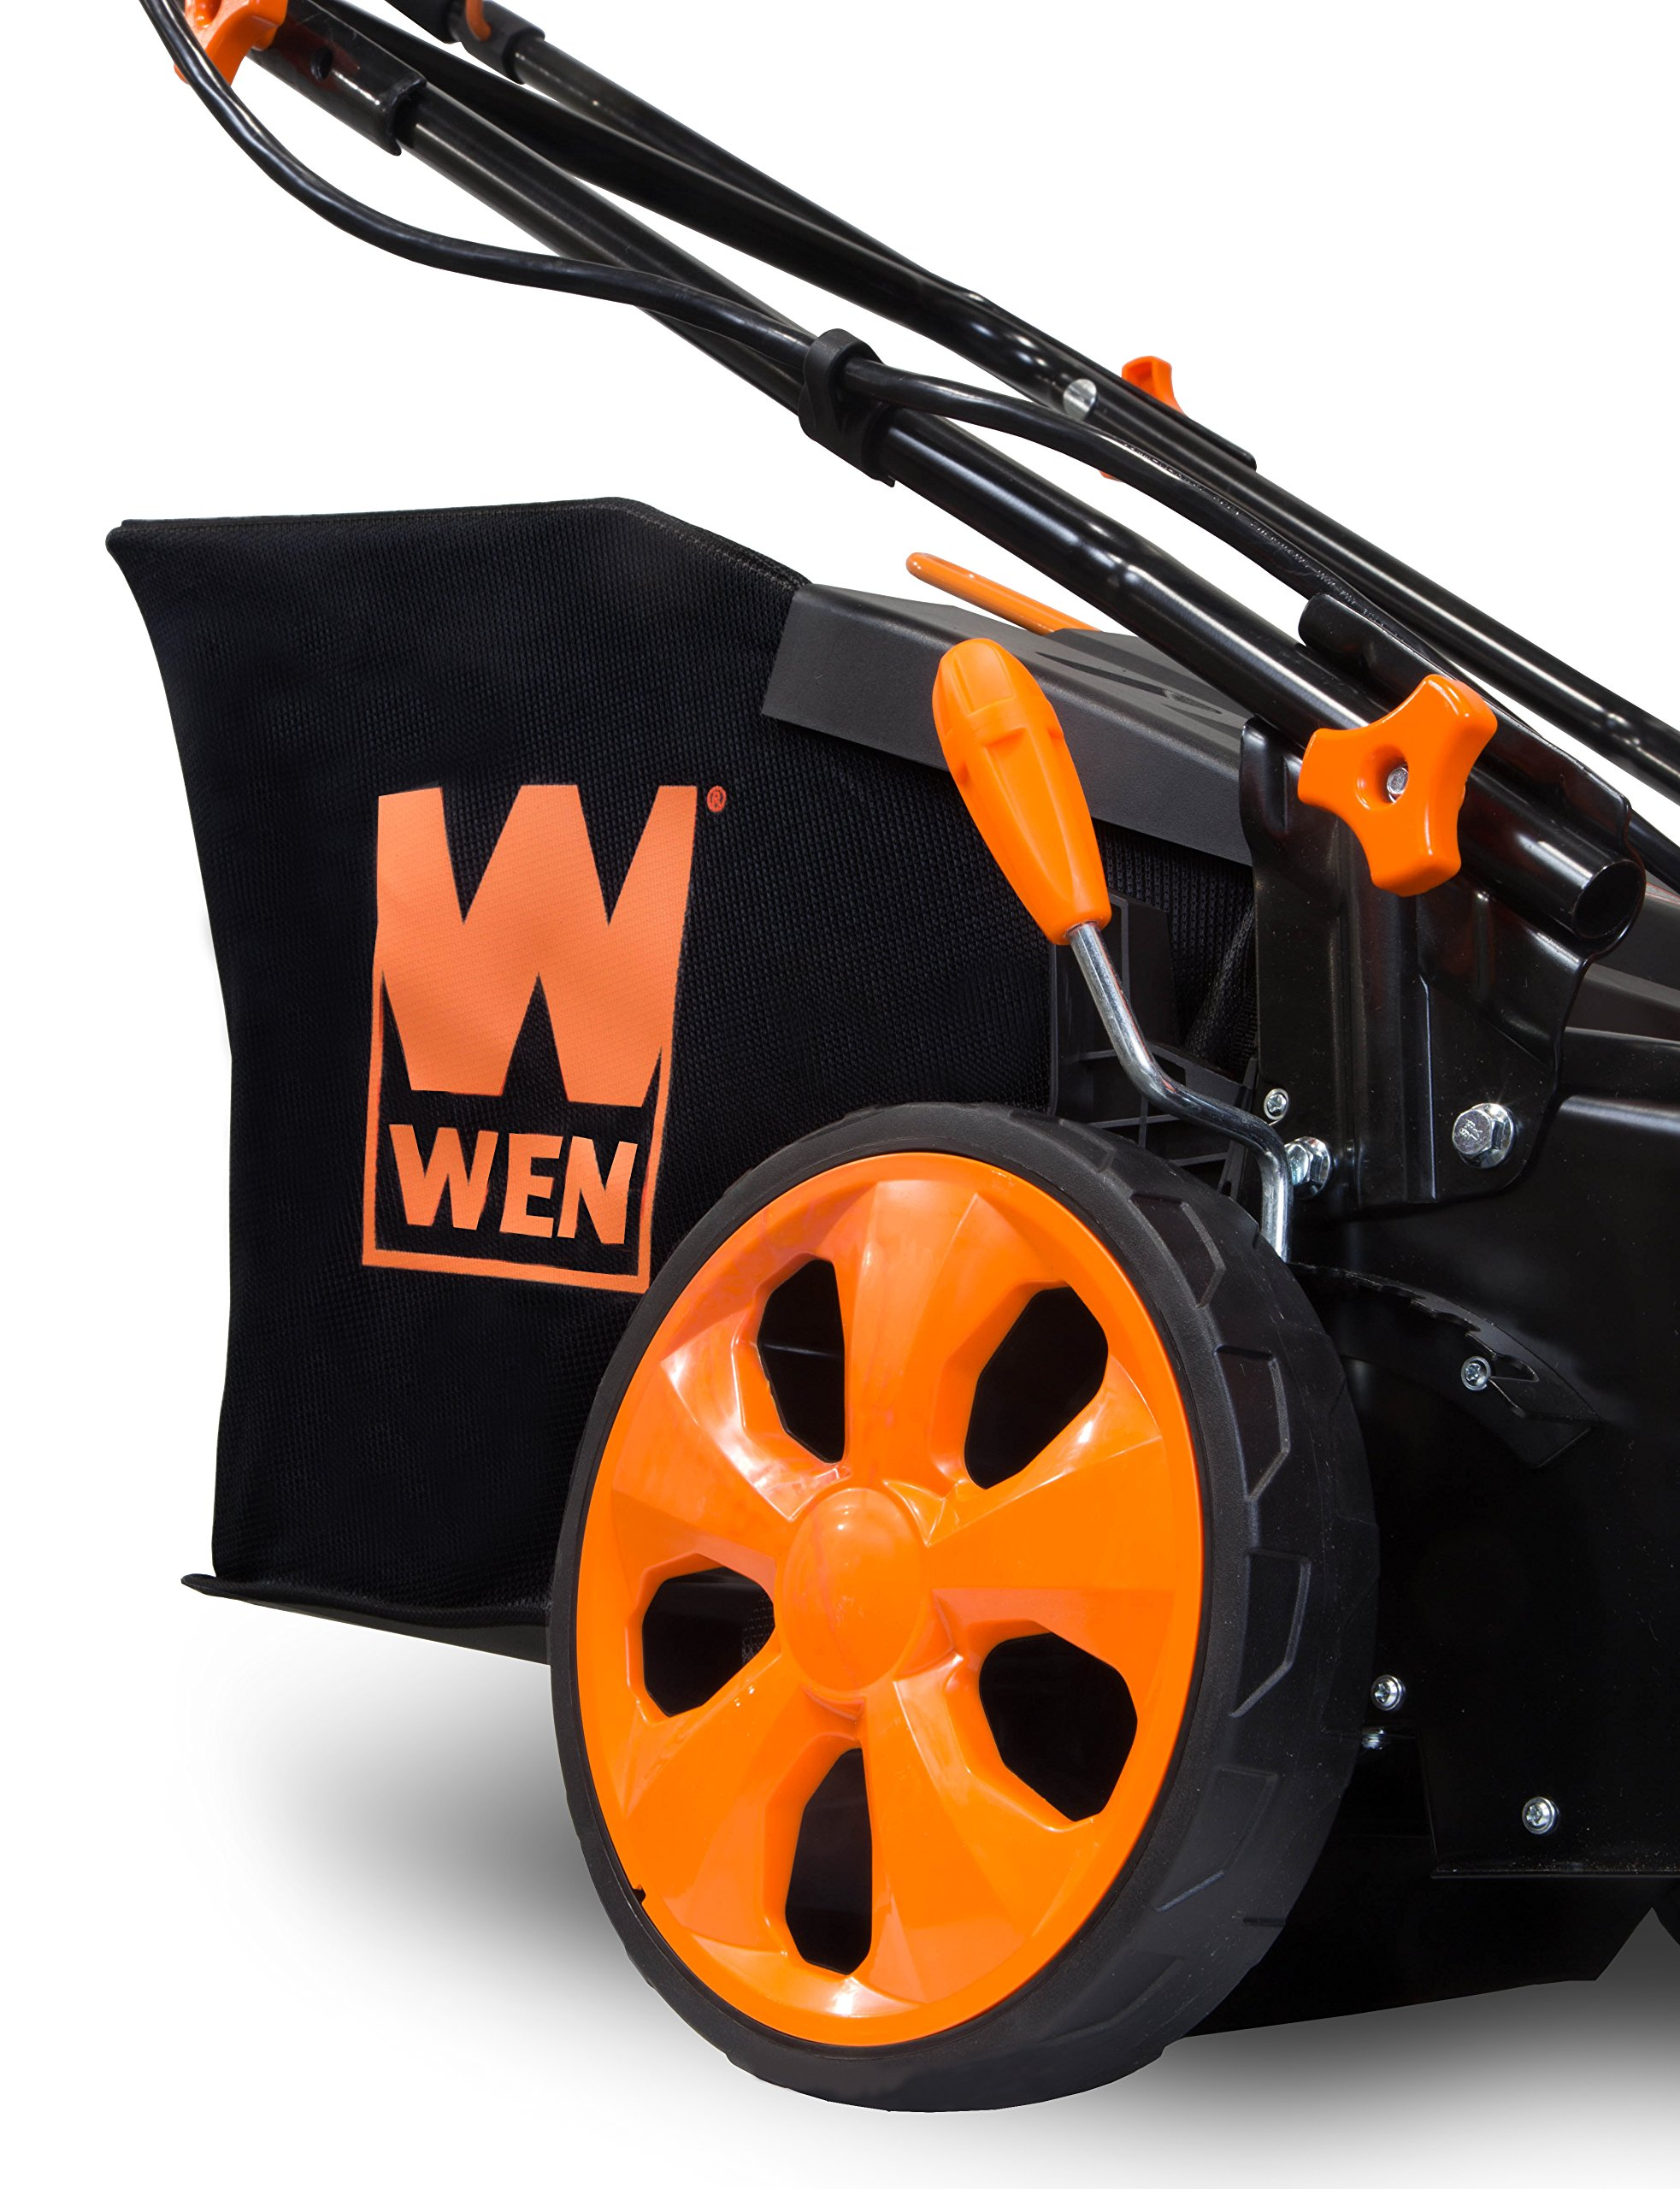 WEN 40439 40V Max Lithium Ion 19-Inch Cordless 3-in-1 Electric Lawn Mower with Two Batteries, 16-Gallon Bag and Charger 4 Includes one 4 amp-hour battery, one 2 amp-hour battery, one 16-gallon bag, one charger, and a two-year warranty Versatile 19-inch steel deck allows users to mulch, bag or use the side discharge door Adjust the cutting height between six different stops ranging from 1.5 to 4 inches